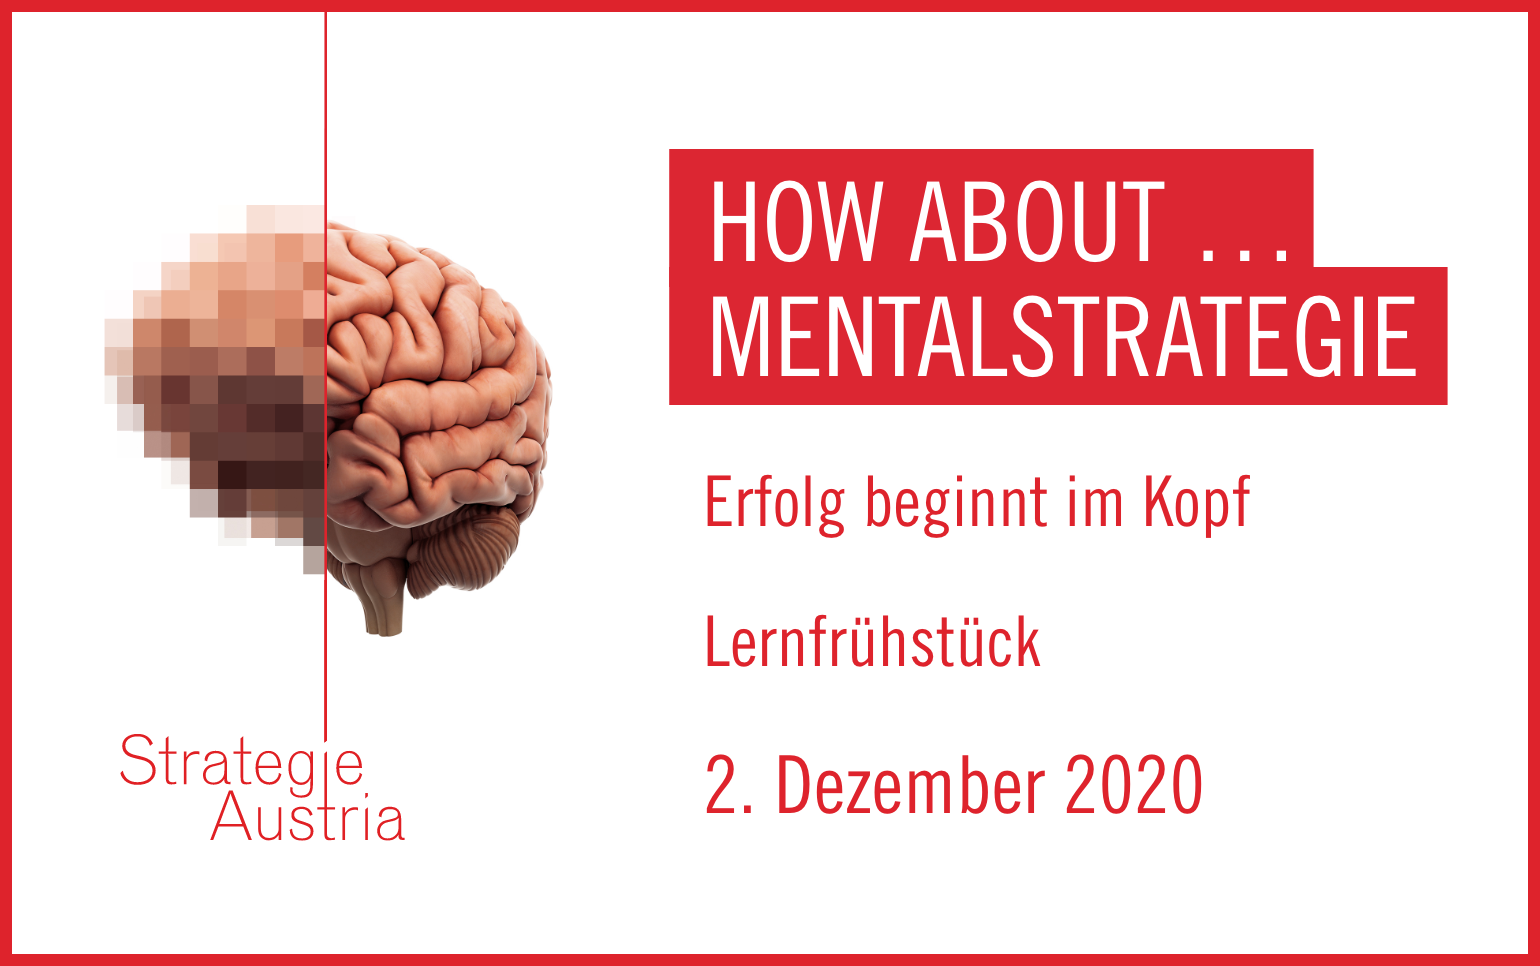 How about... Mentalstrategie